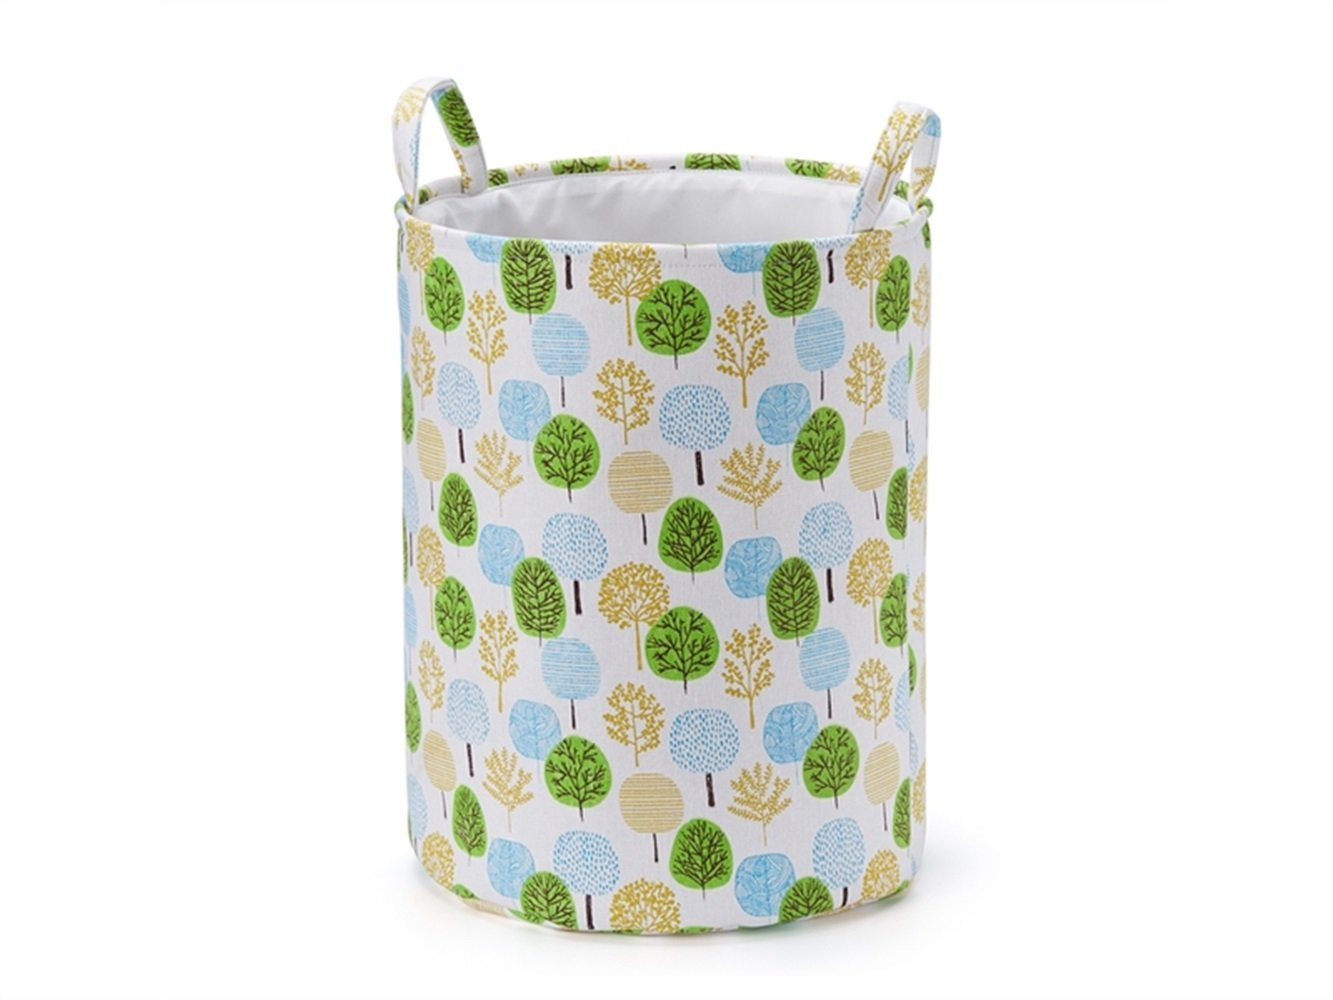 Gelaiken Lightweight Tree Pattern Storage Box Laundry Basket Cotton and Linen Storage Box (Green)